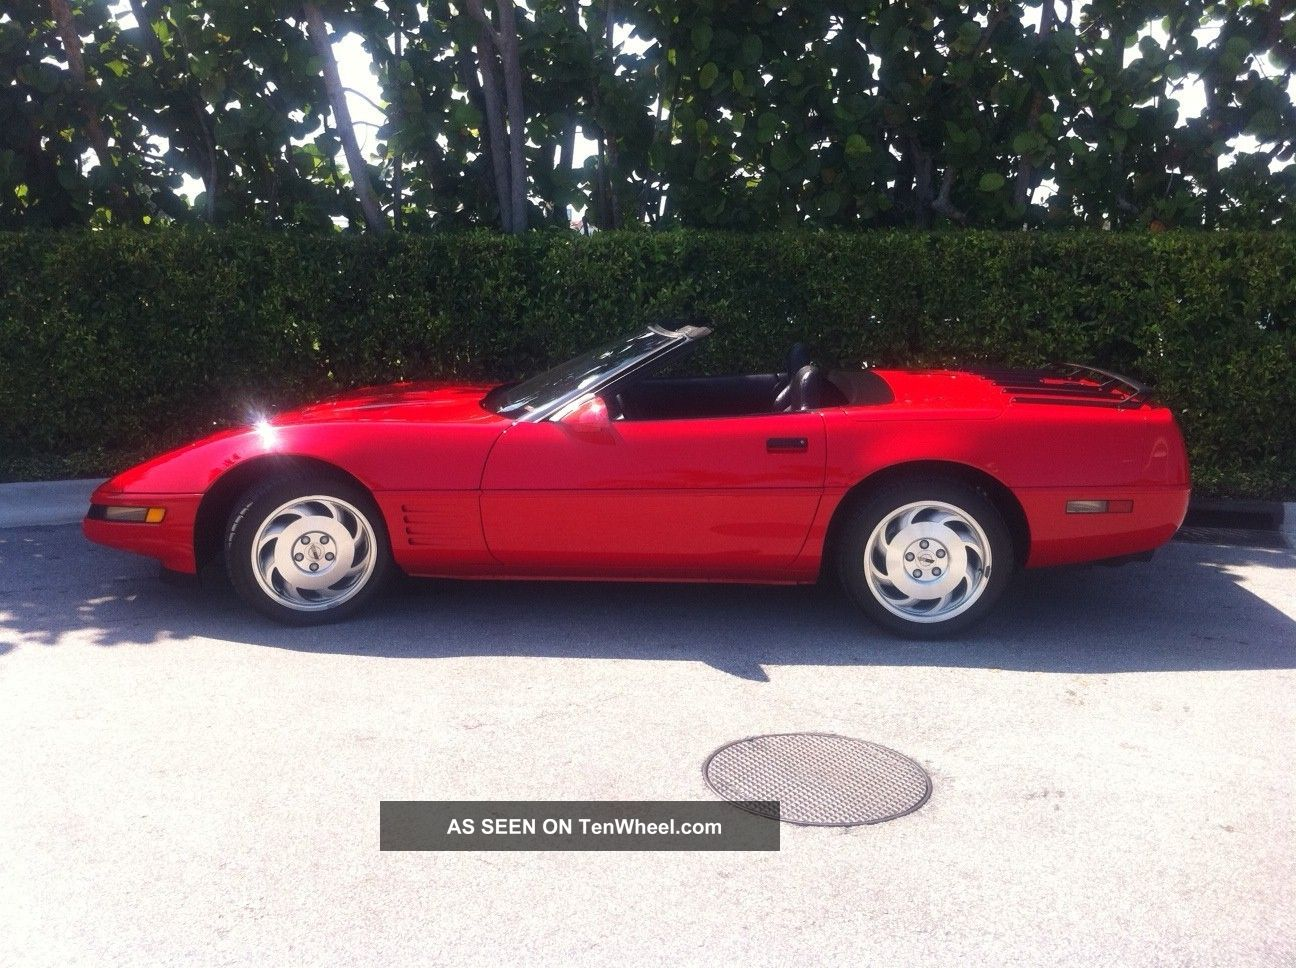 1994 corvette red convertible easy ncrs top flight 1994 Ford Mustang GT Convertible 1993 Mustang Convertible